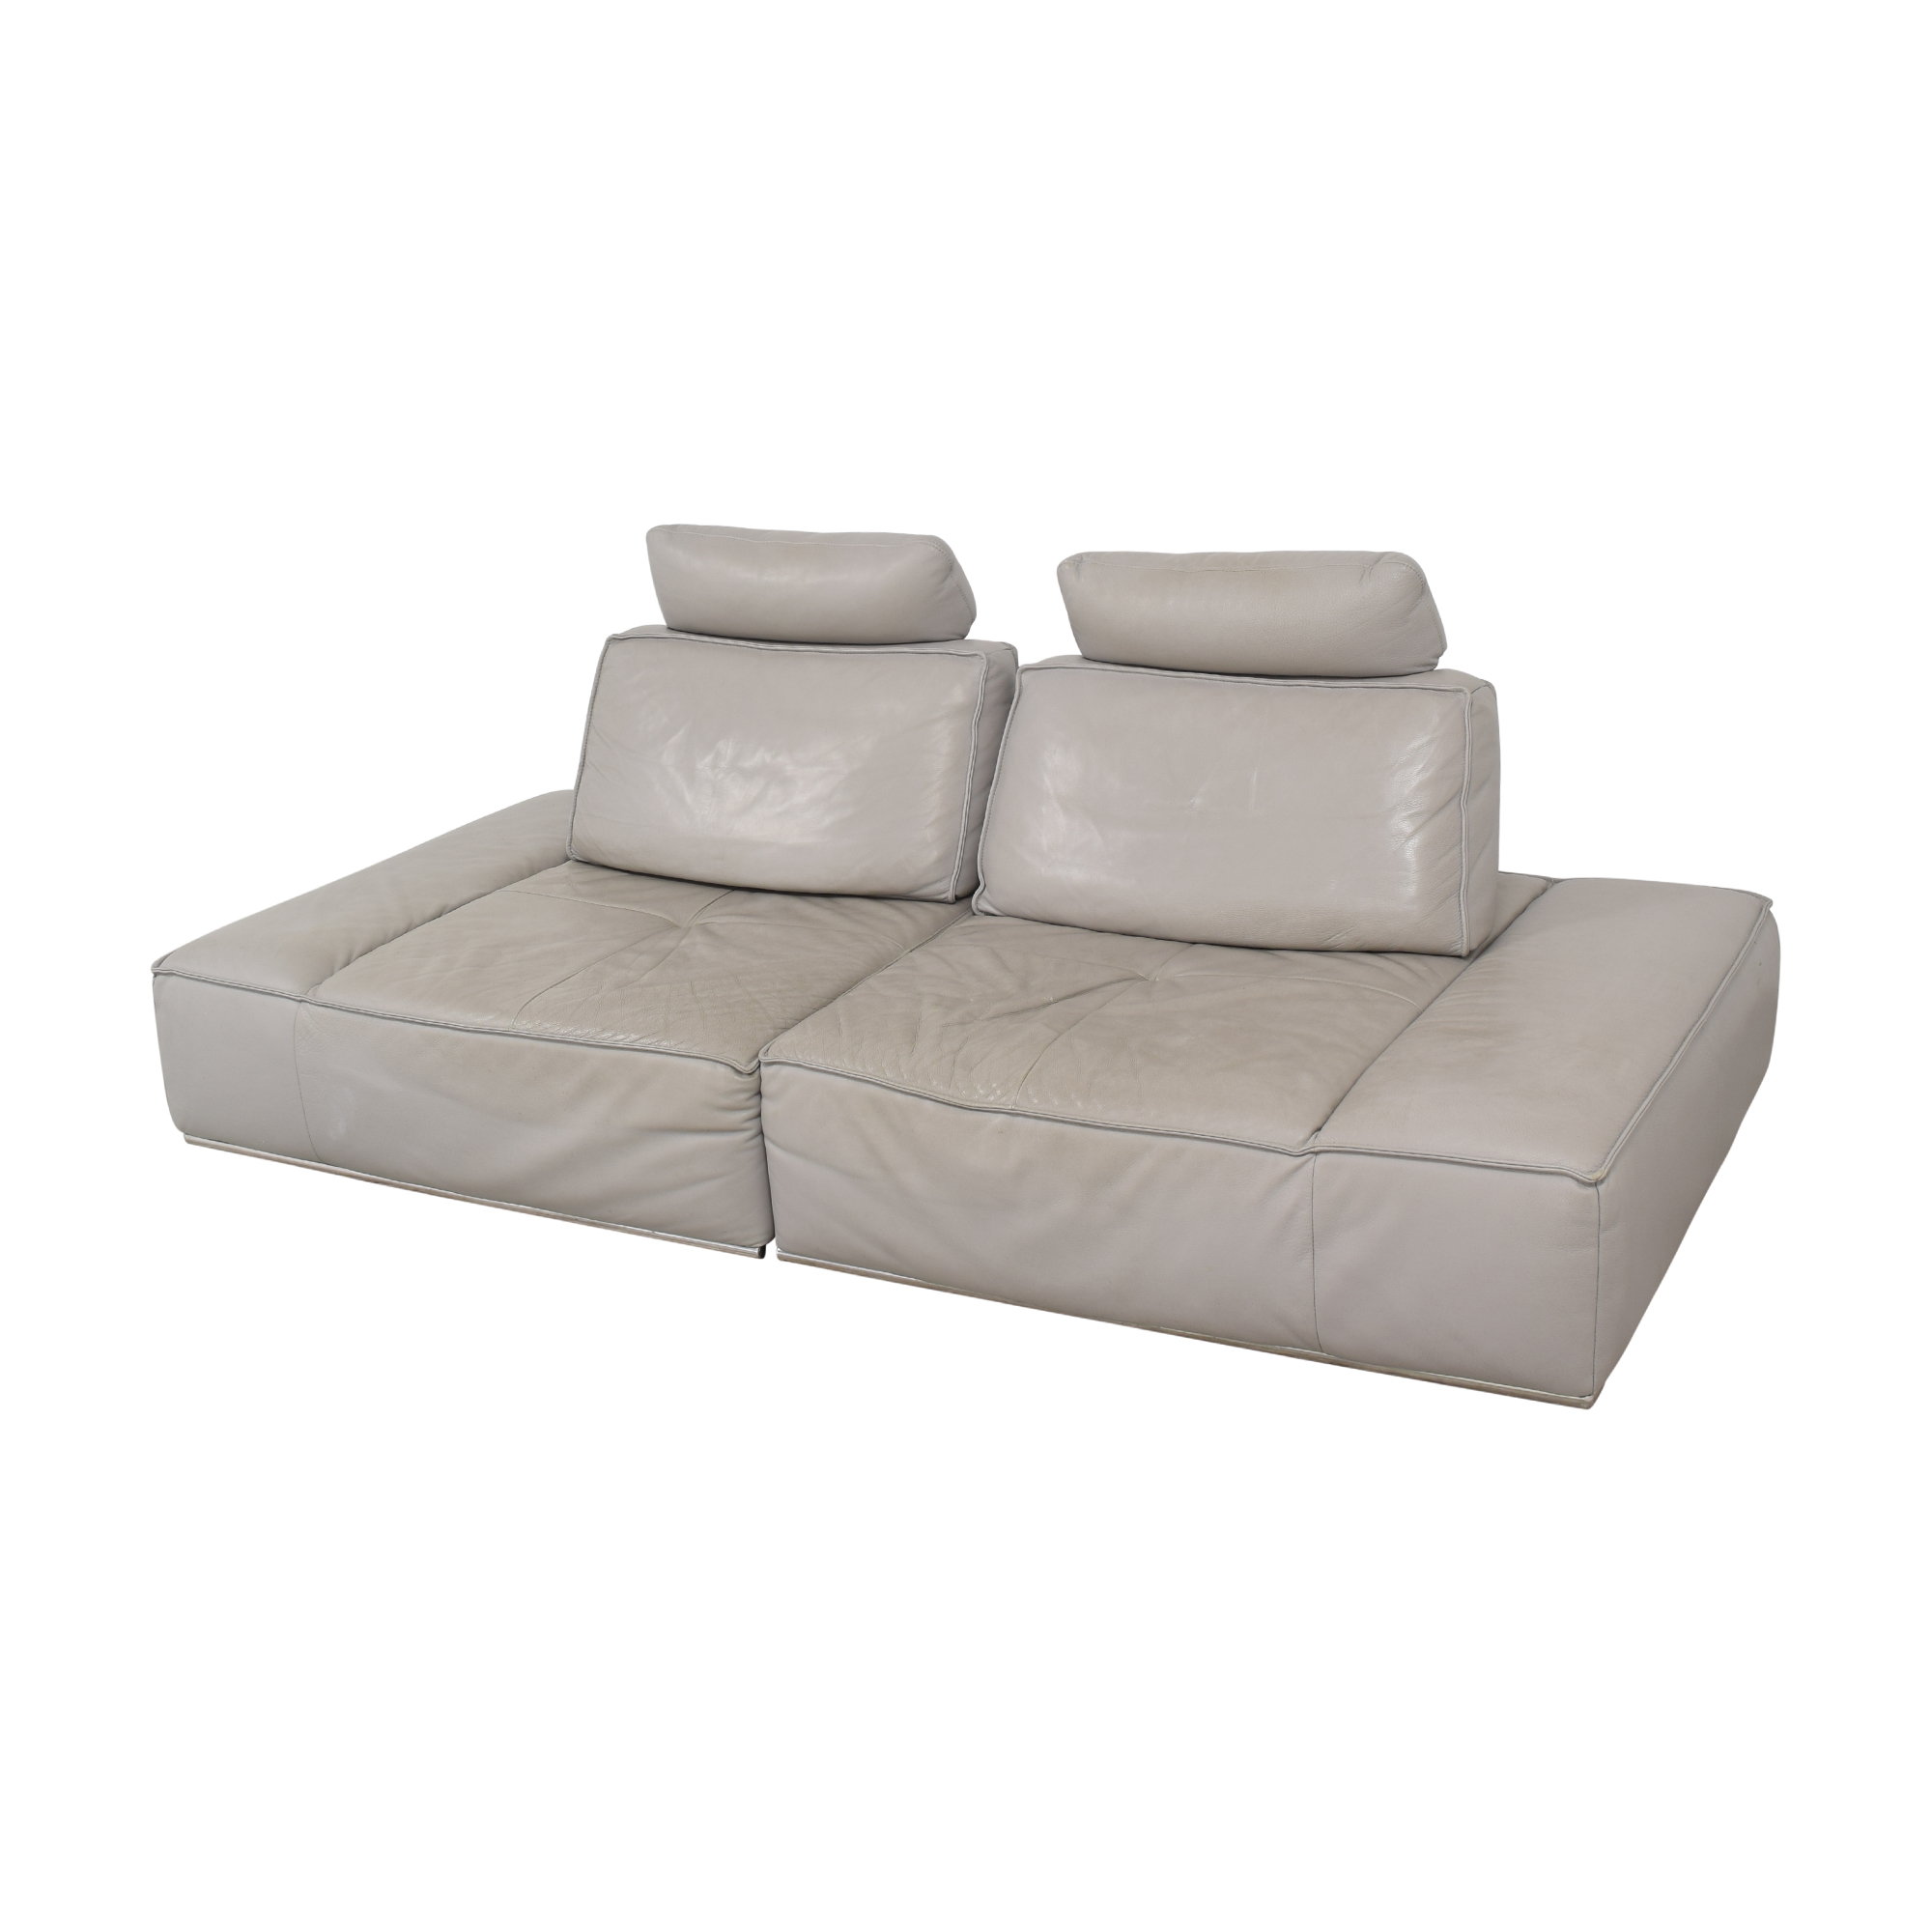 shop Sit Down New York Convertible Sectional Sofa Sit Down New York